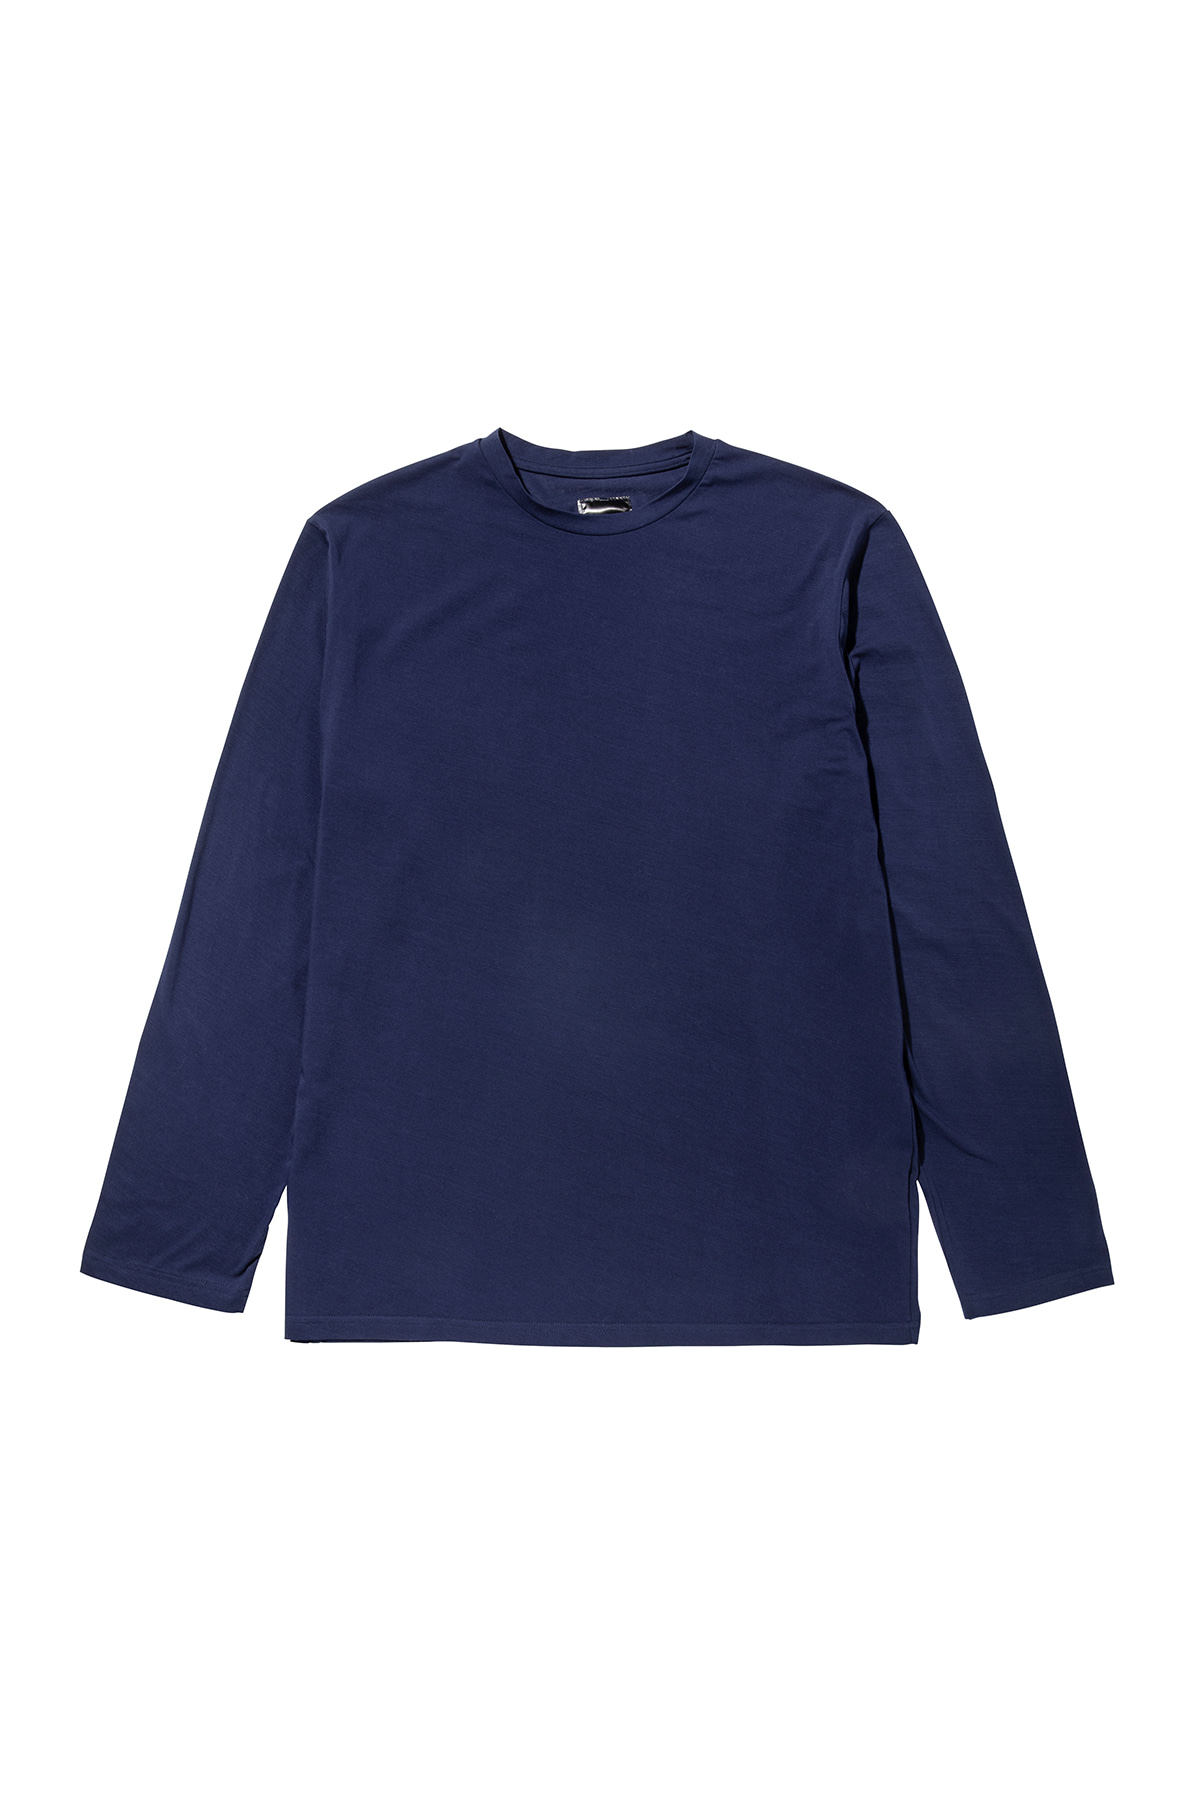 Pigment washing sleeve T-shirt (navy) #jp28